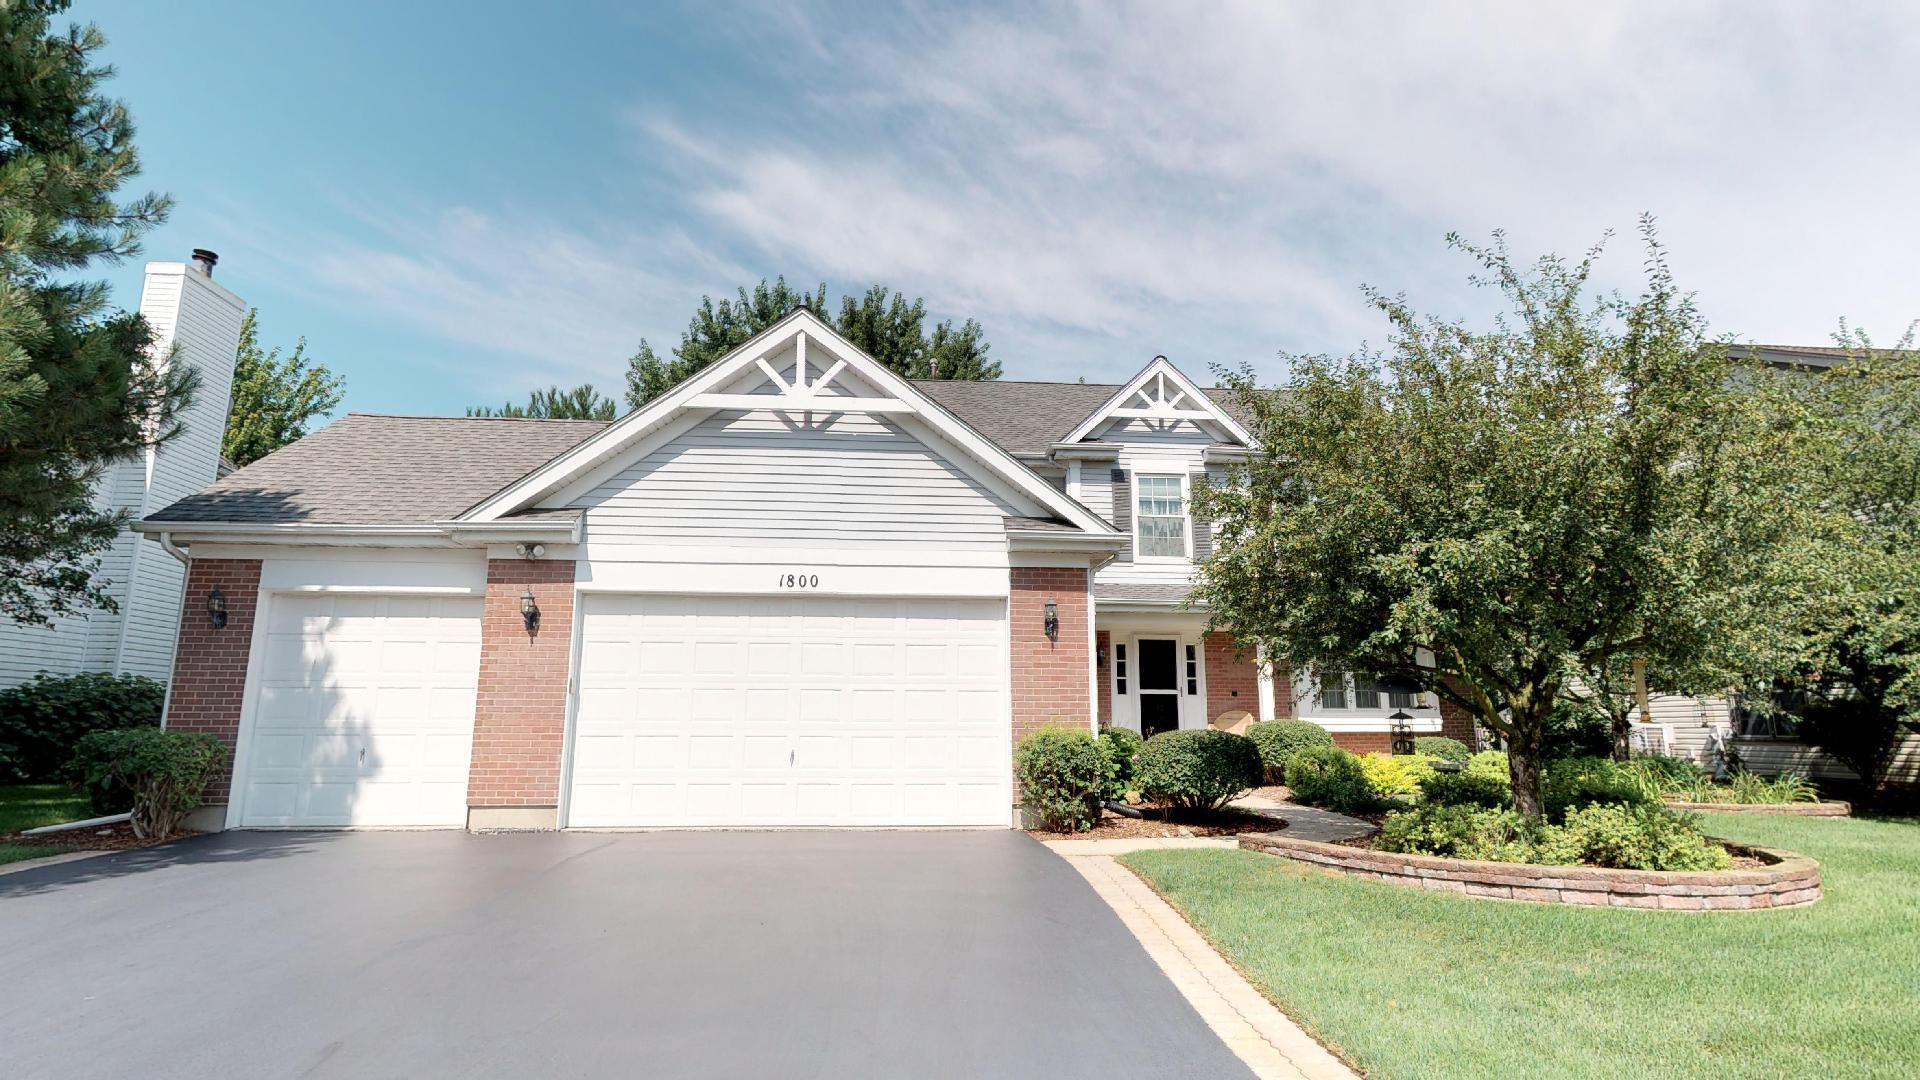 Photo for 1800 Haverford Drive, ALGONQUIN, IL 60102 (MLS # 10123746)